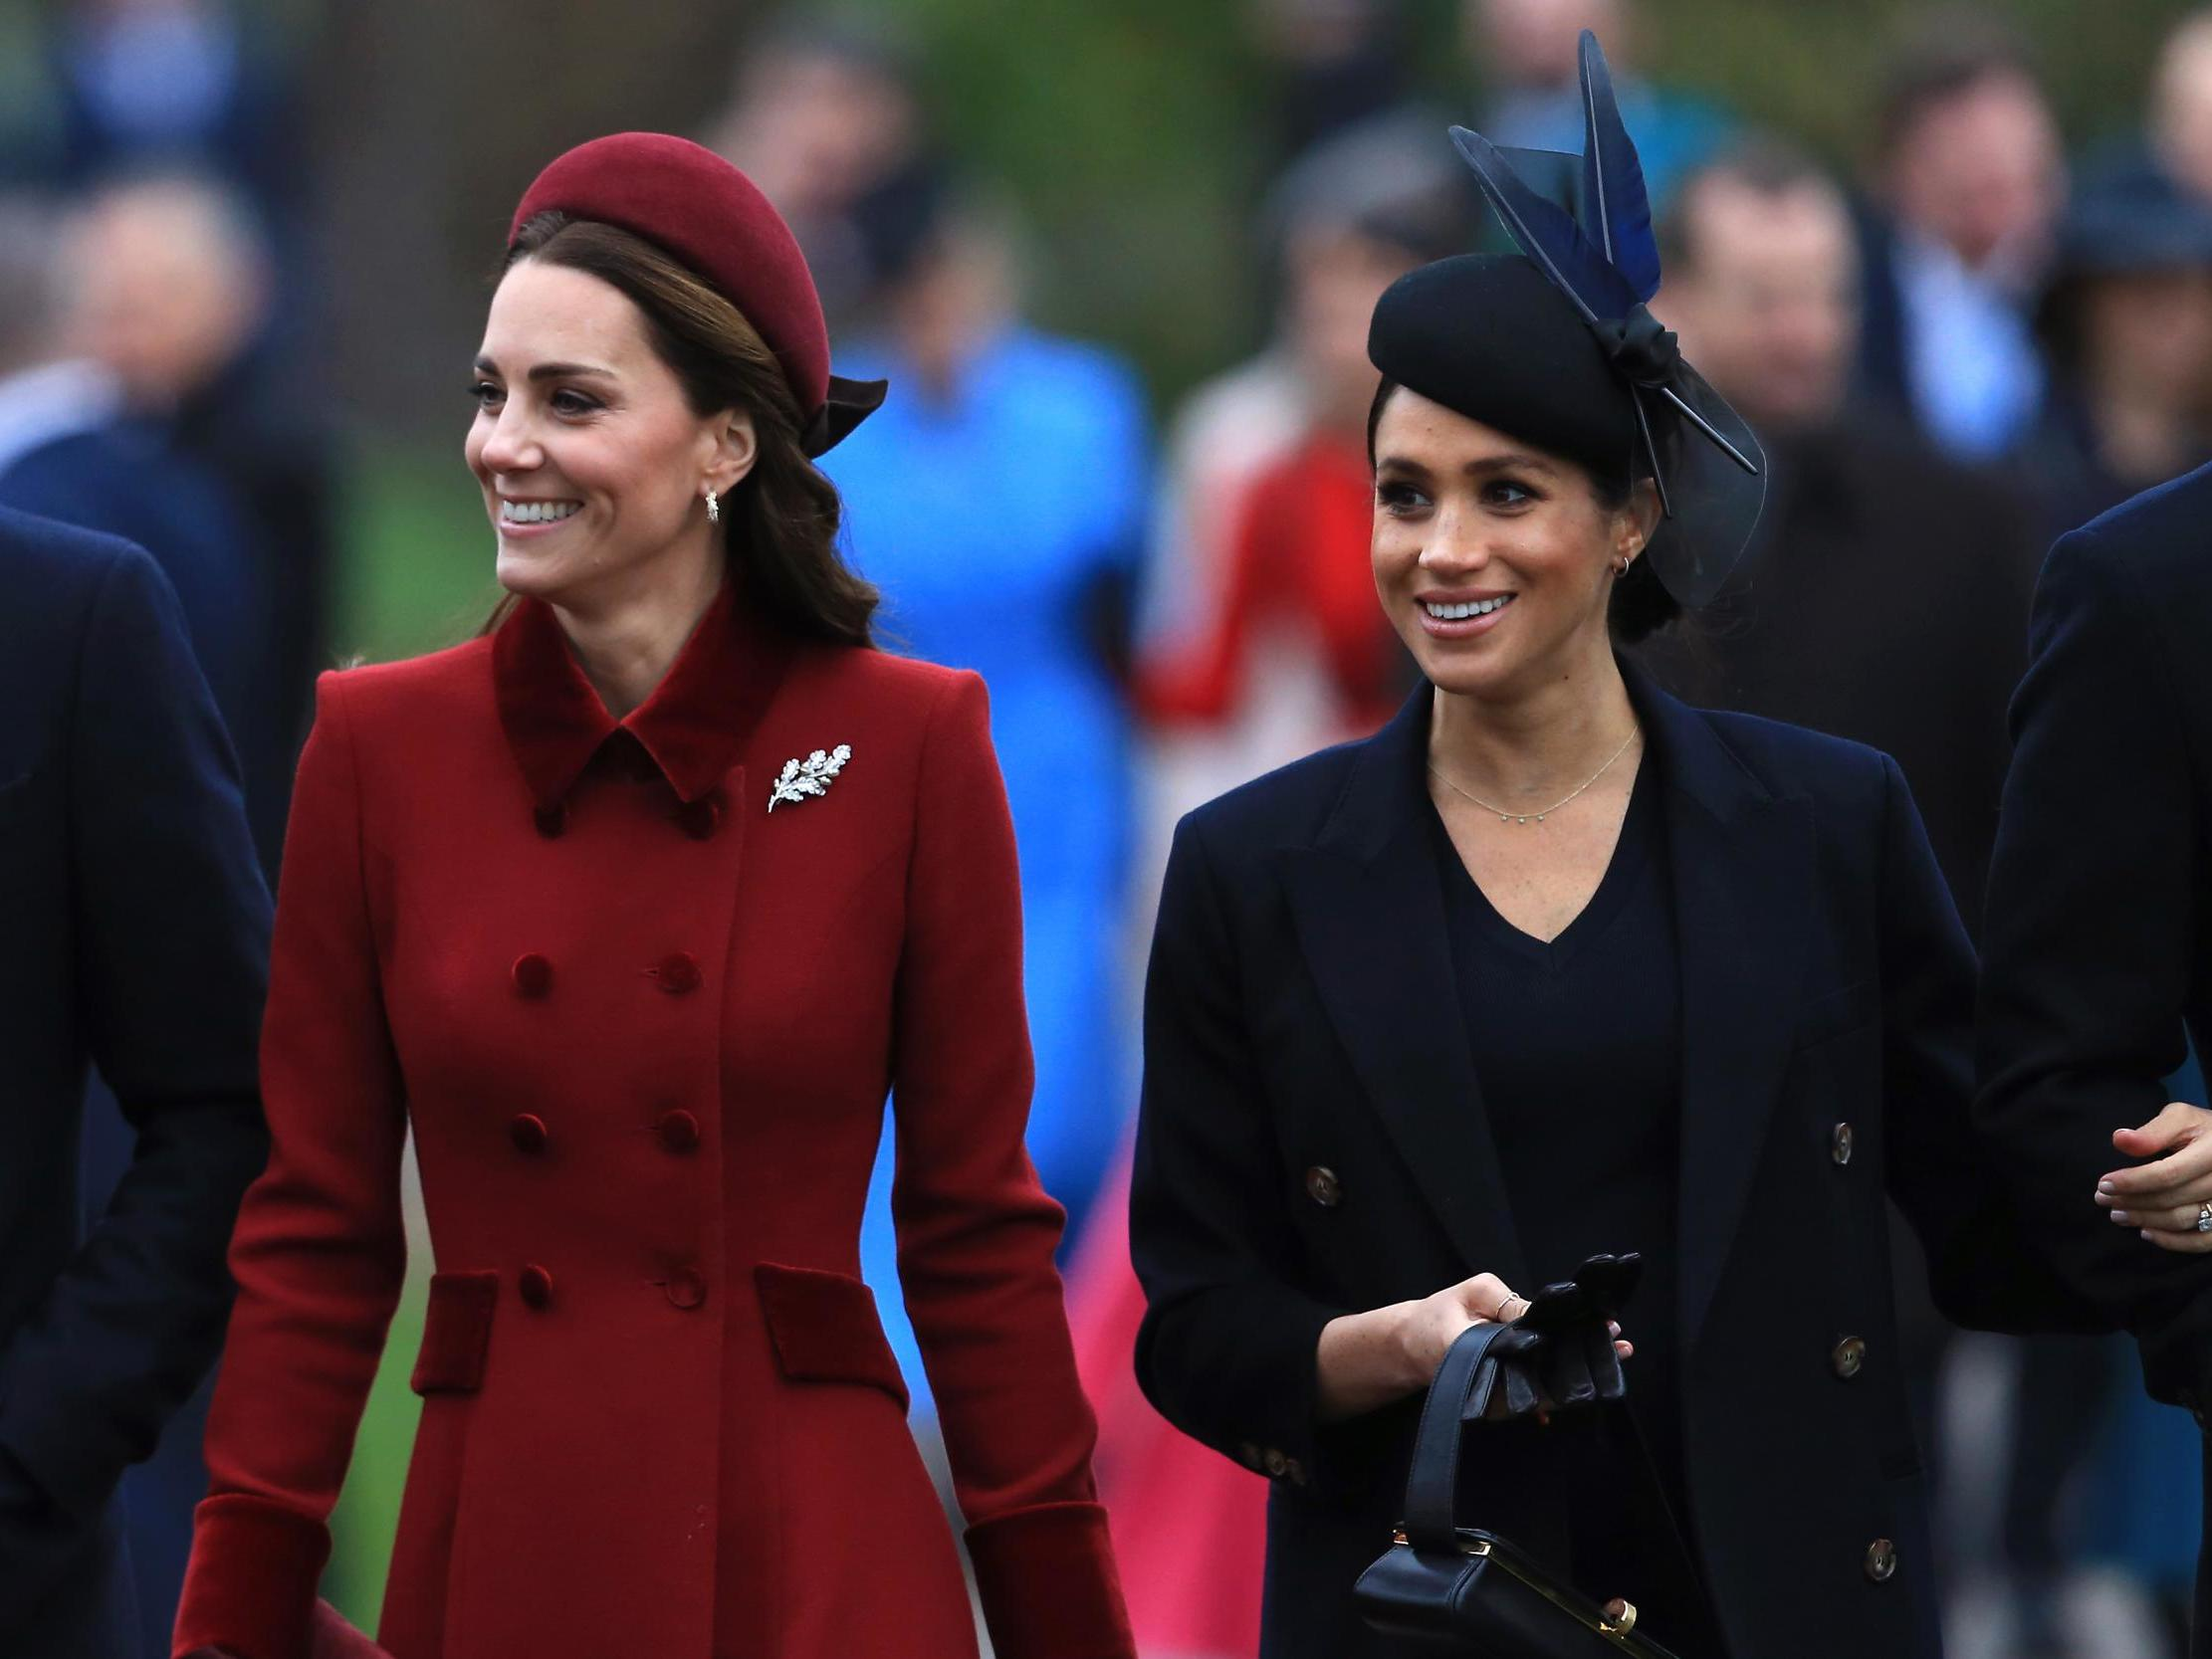 Meghan Markle 'gets twice as much negative press' as Kate Middleton, data shows